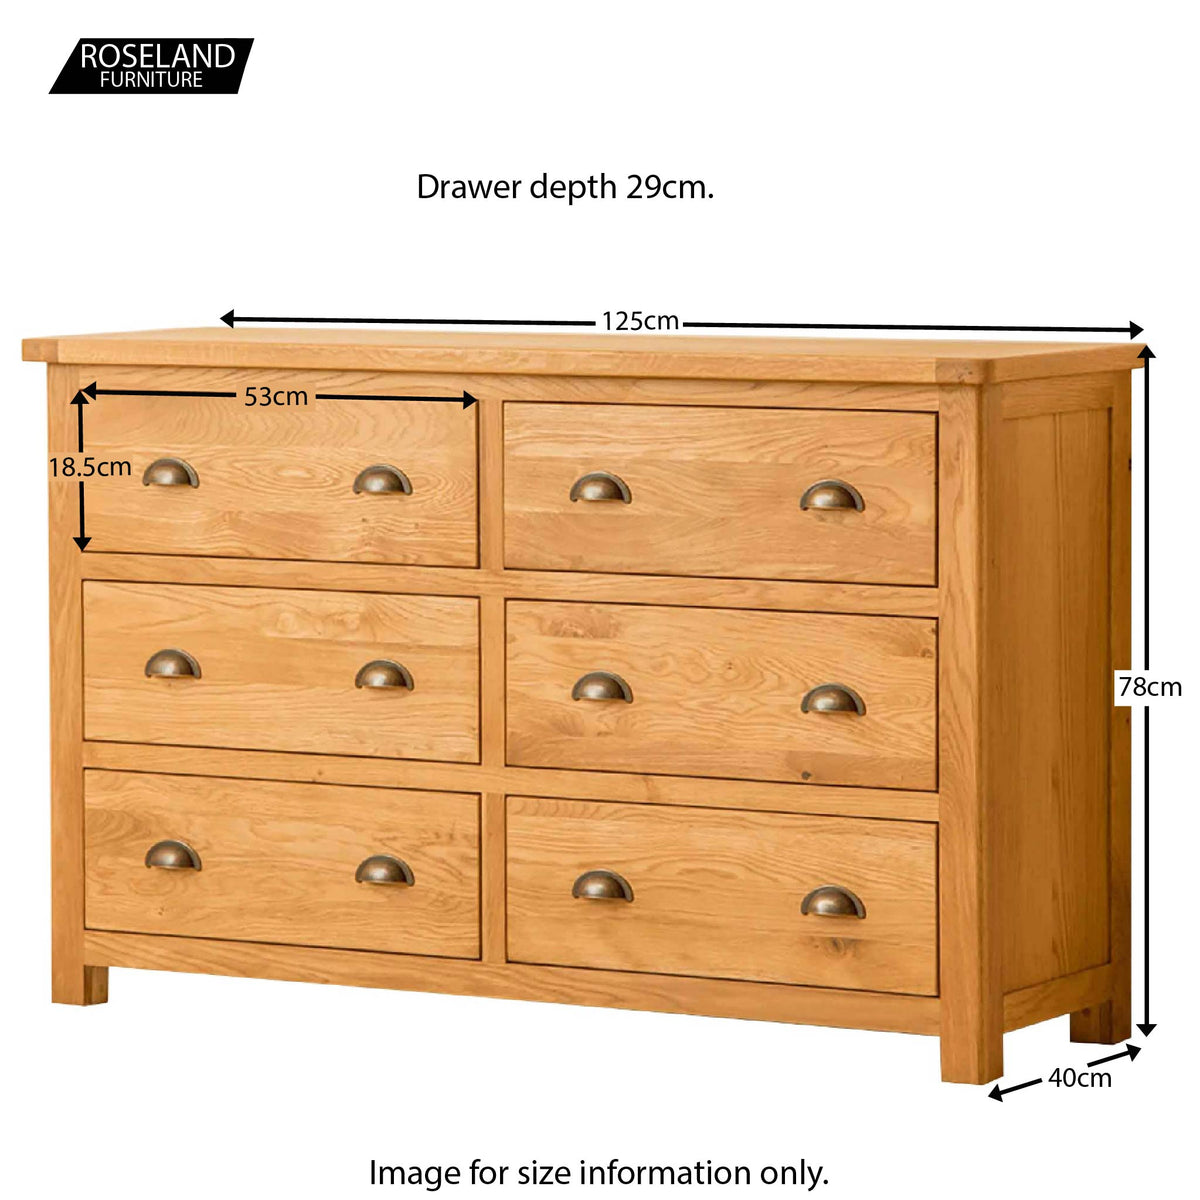 Roseland Oak 6 Drawer Chest of Drawers - Size Guide